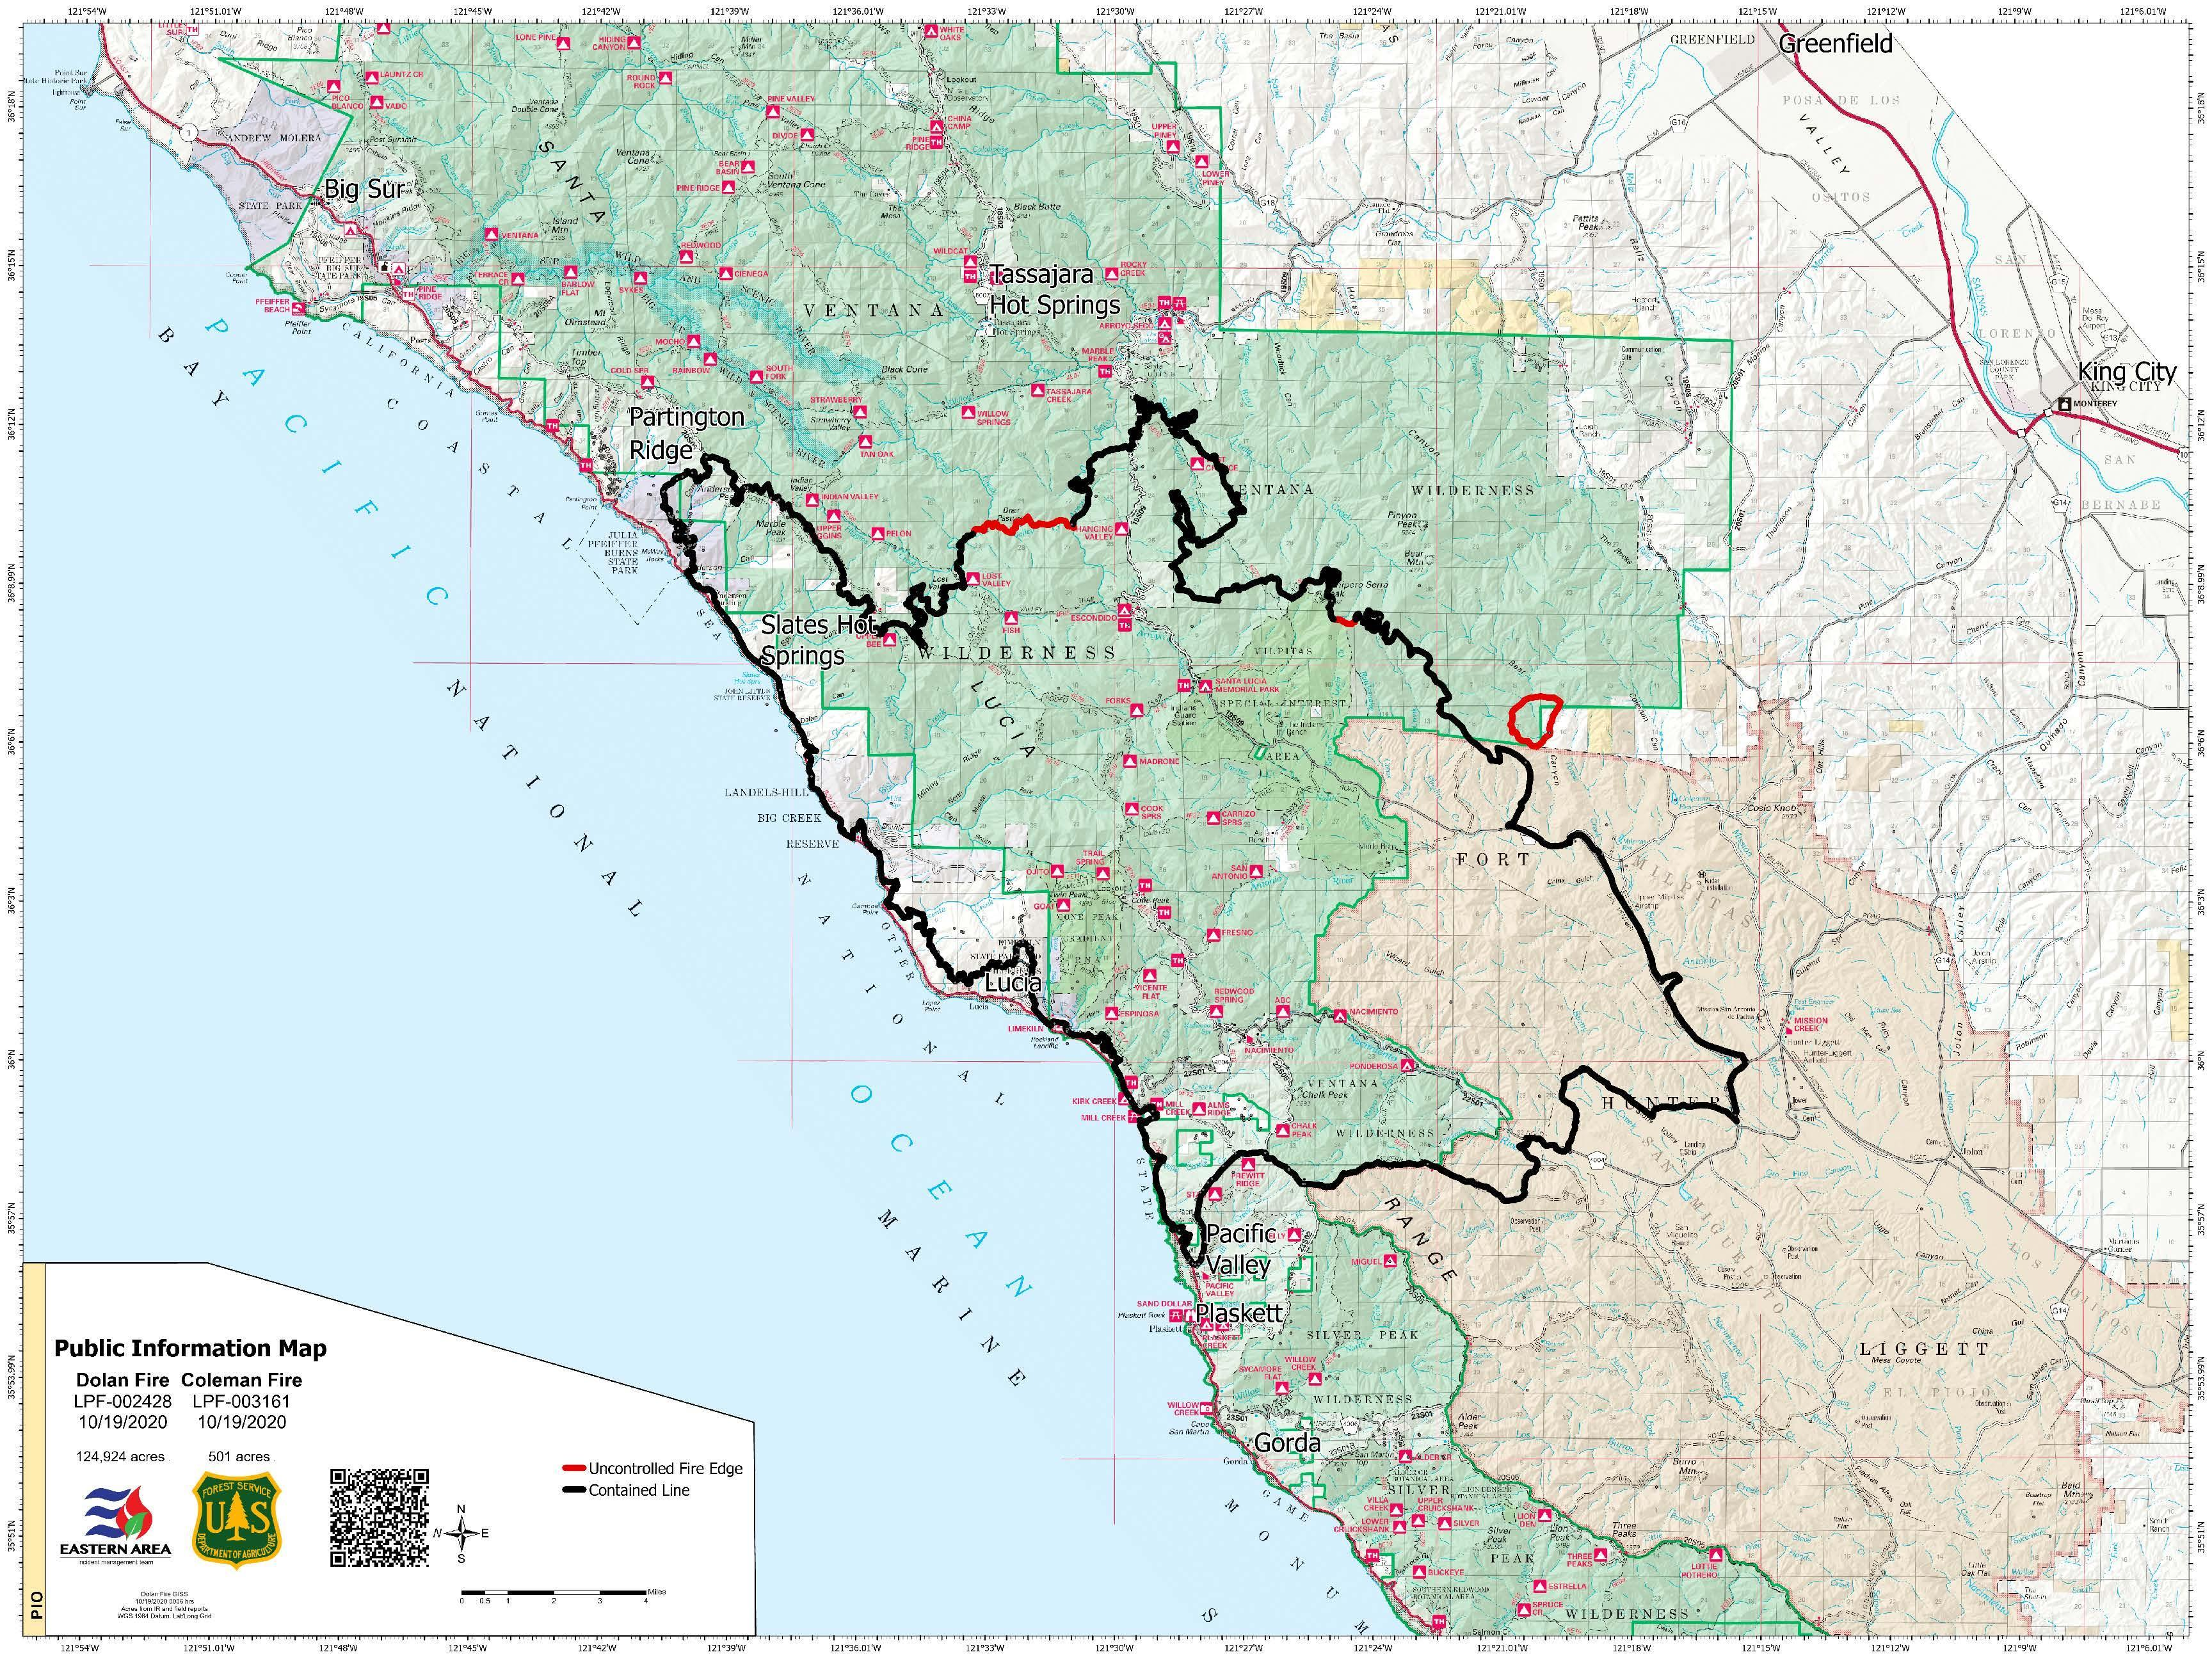 topographic map of Dolan fire area